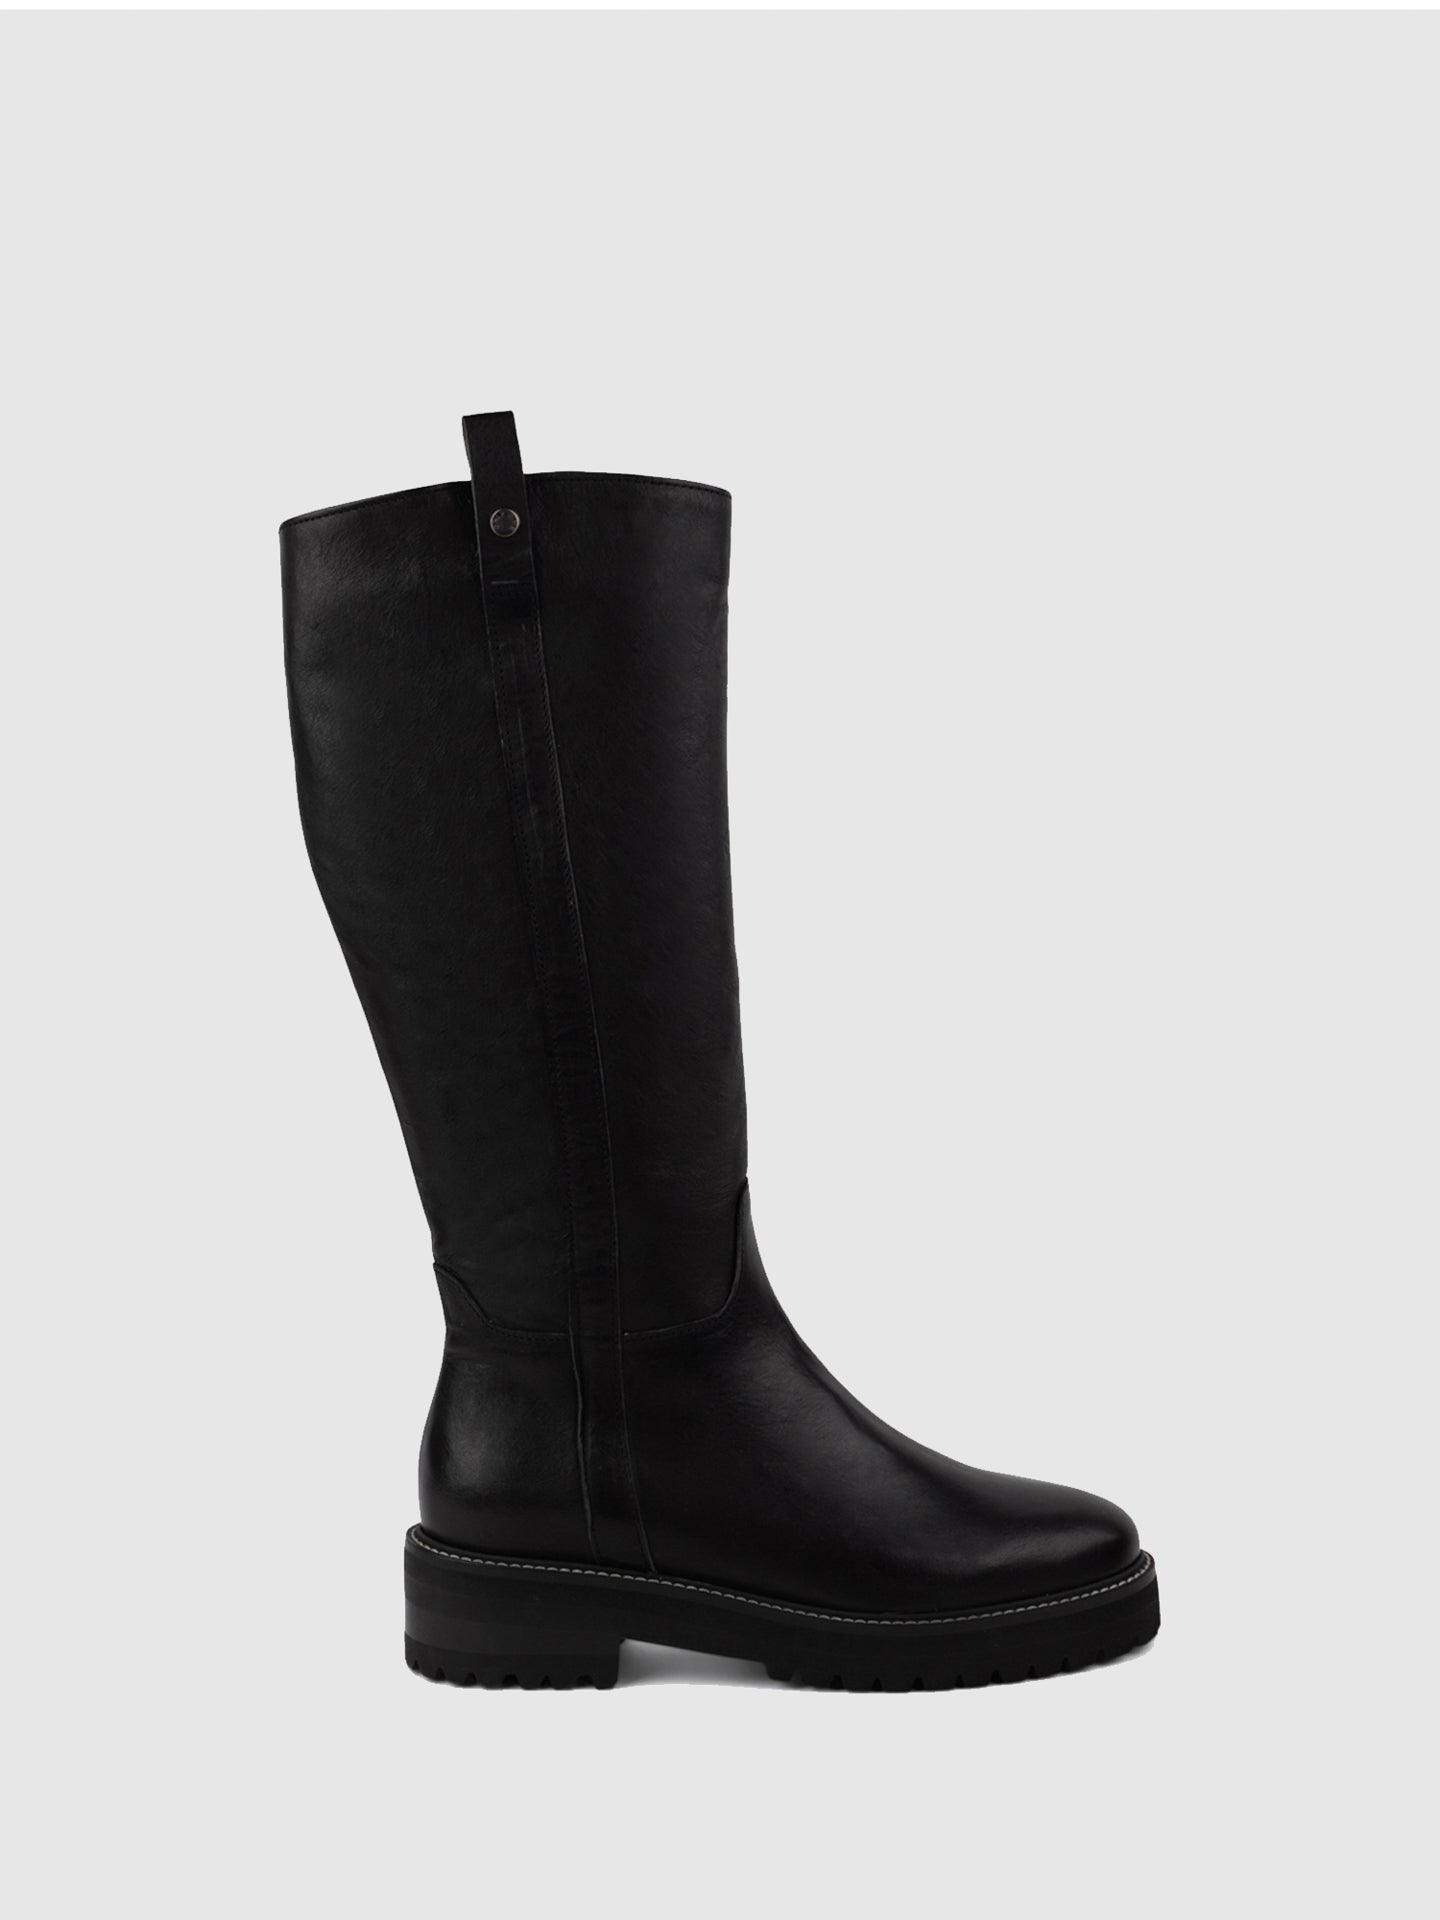 Only2me Black Round Toe Boots